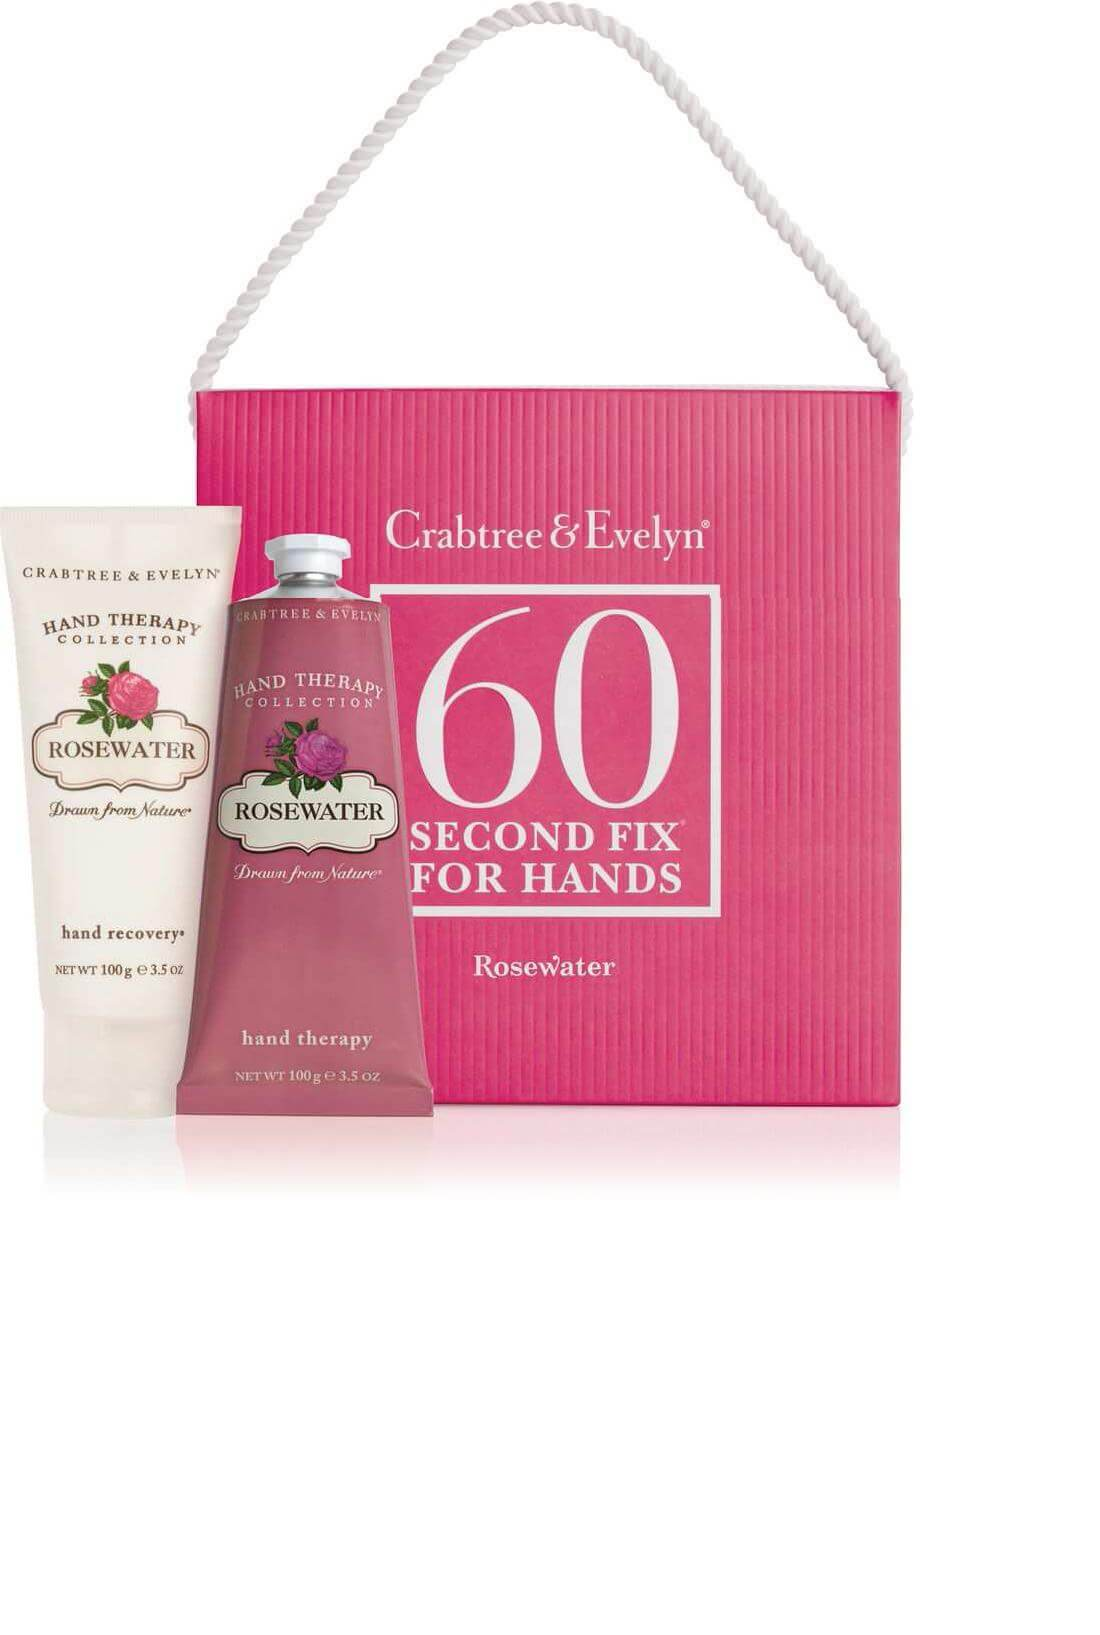 Rosewater 60 Seconds Fix Kit